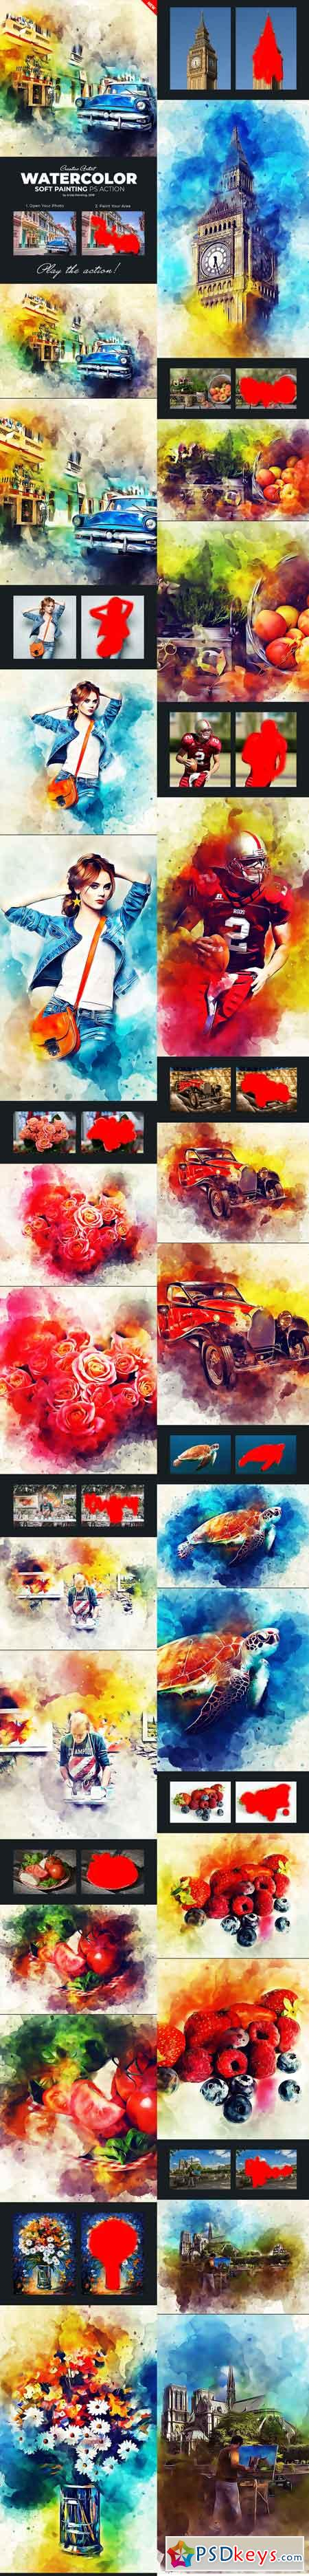 Watercolor Soft Painting Photoshop Action 22082612